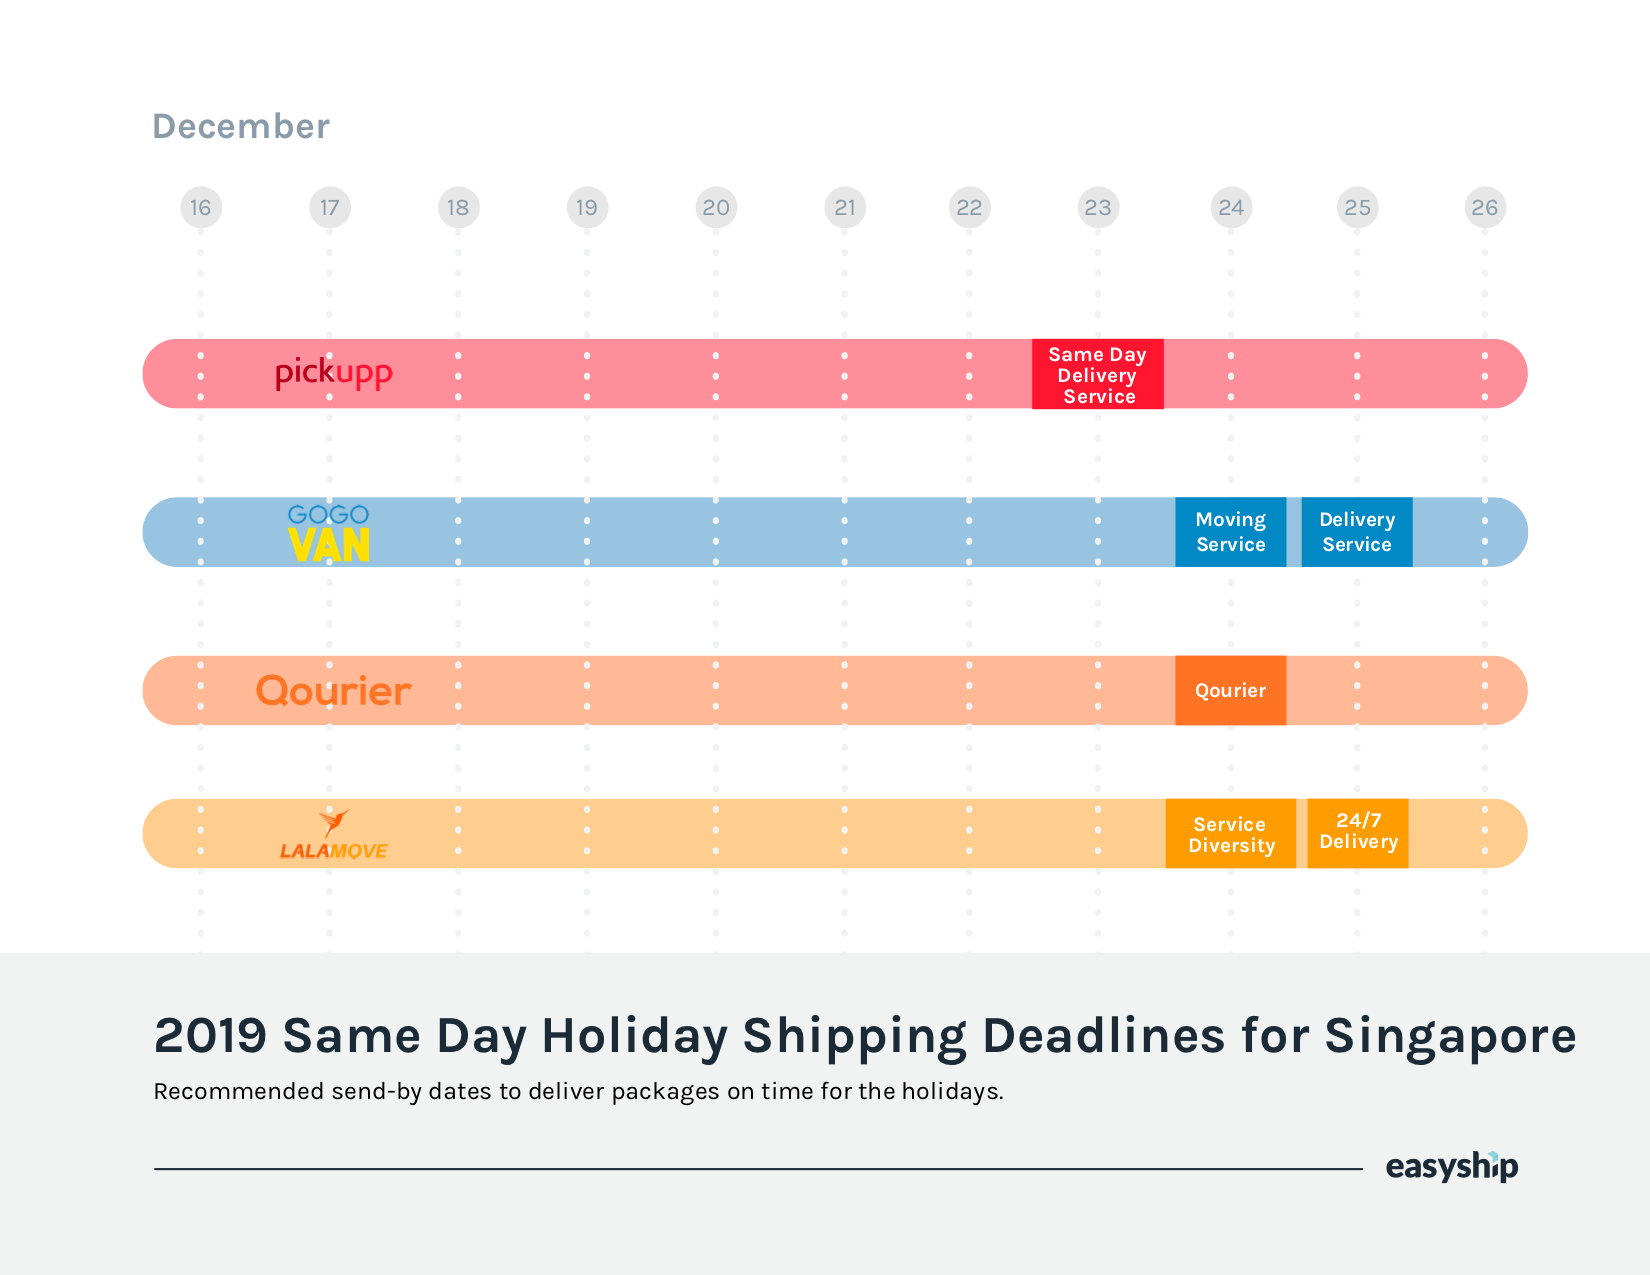 Singapore cutoffs for 2019 just-in-time deliveries for the holidays.